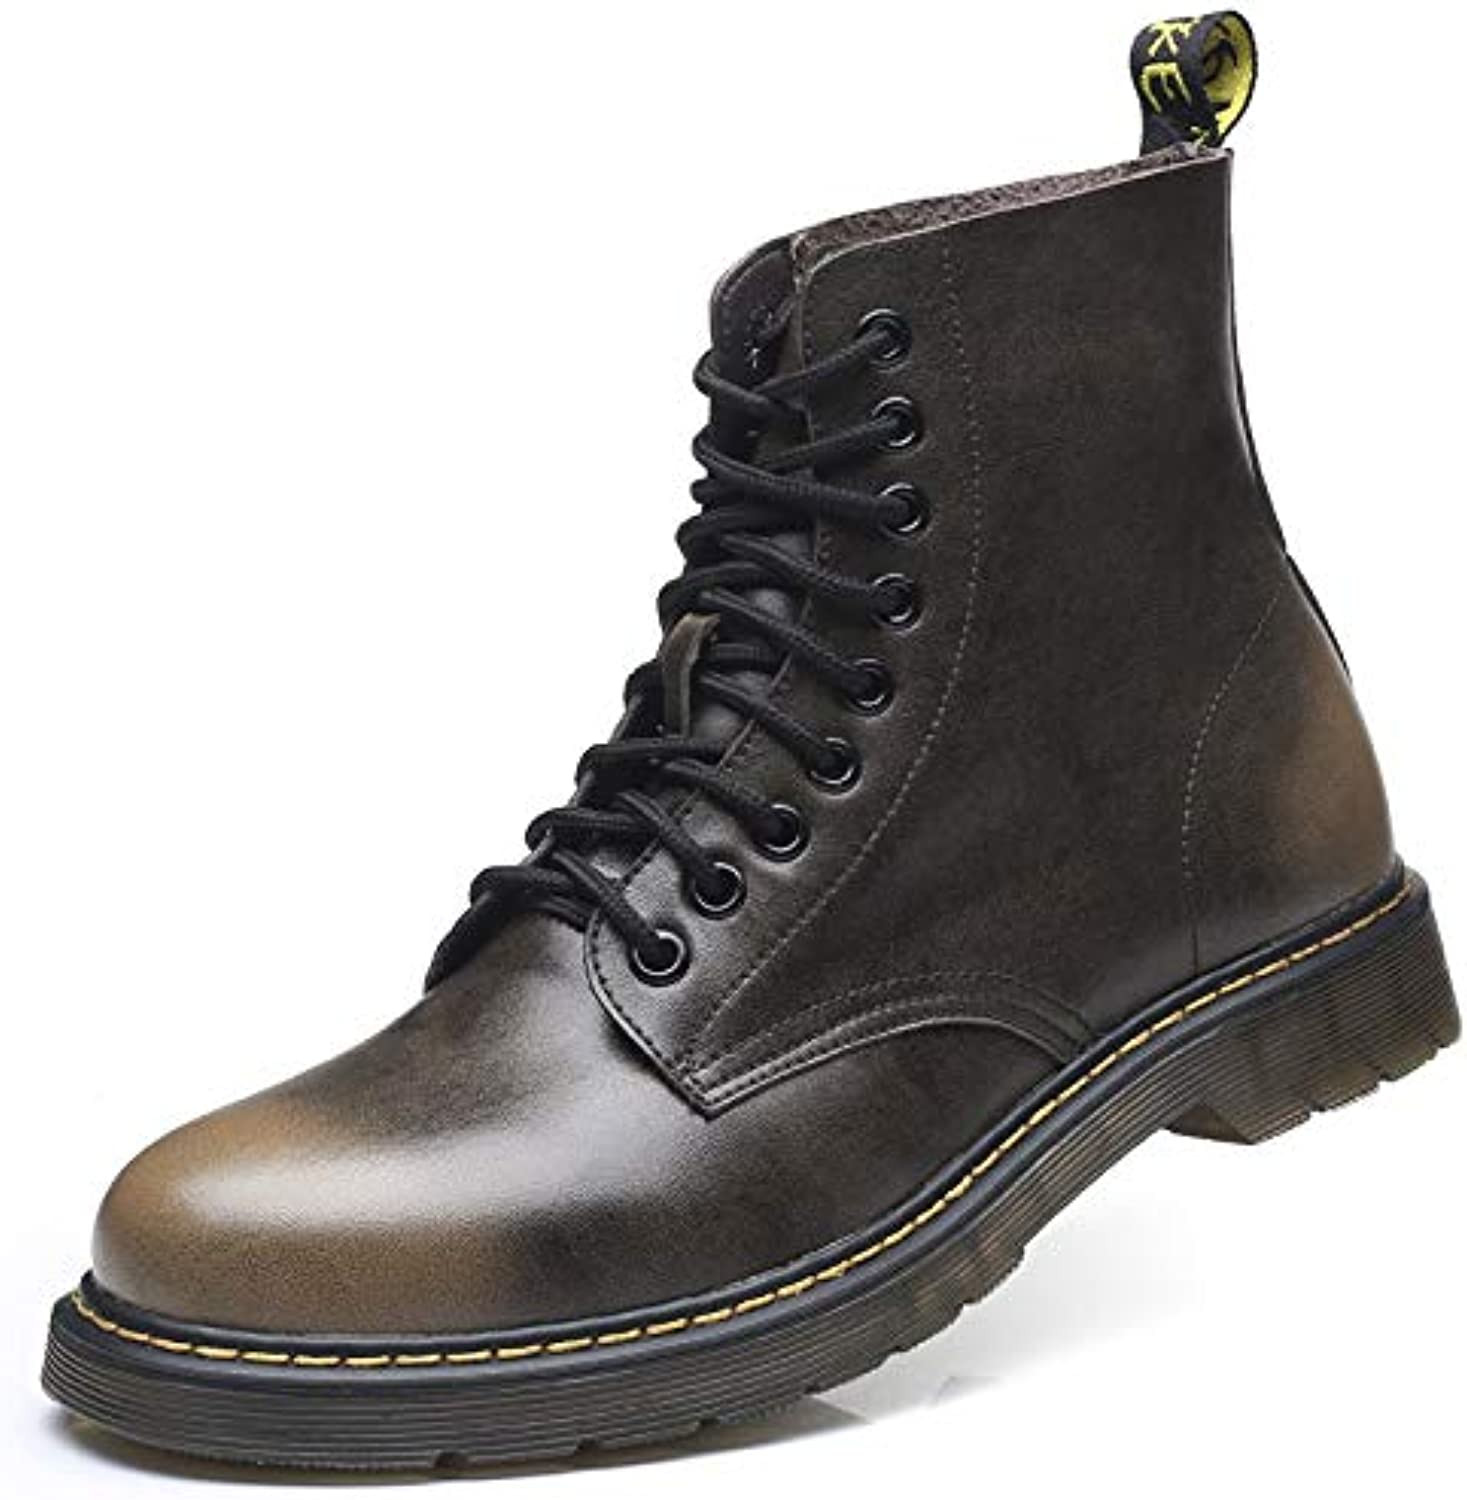 LOVDRAM Boots Men's Autumn Martin Boots Pu Retro Help Tooling Boots High To Help Men'S Boots Extra Large Men'S shoes